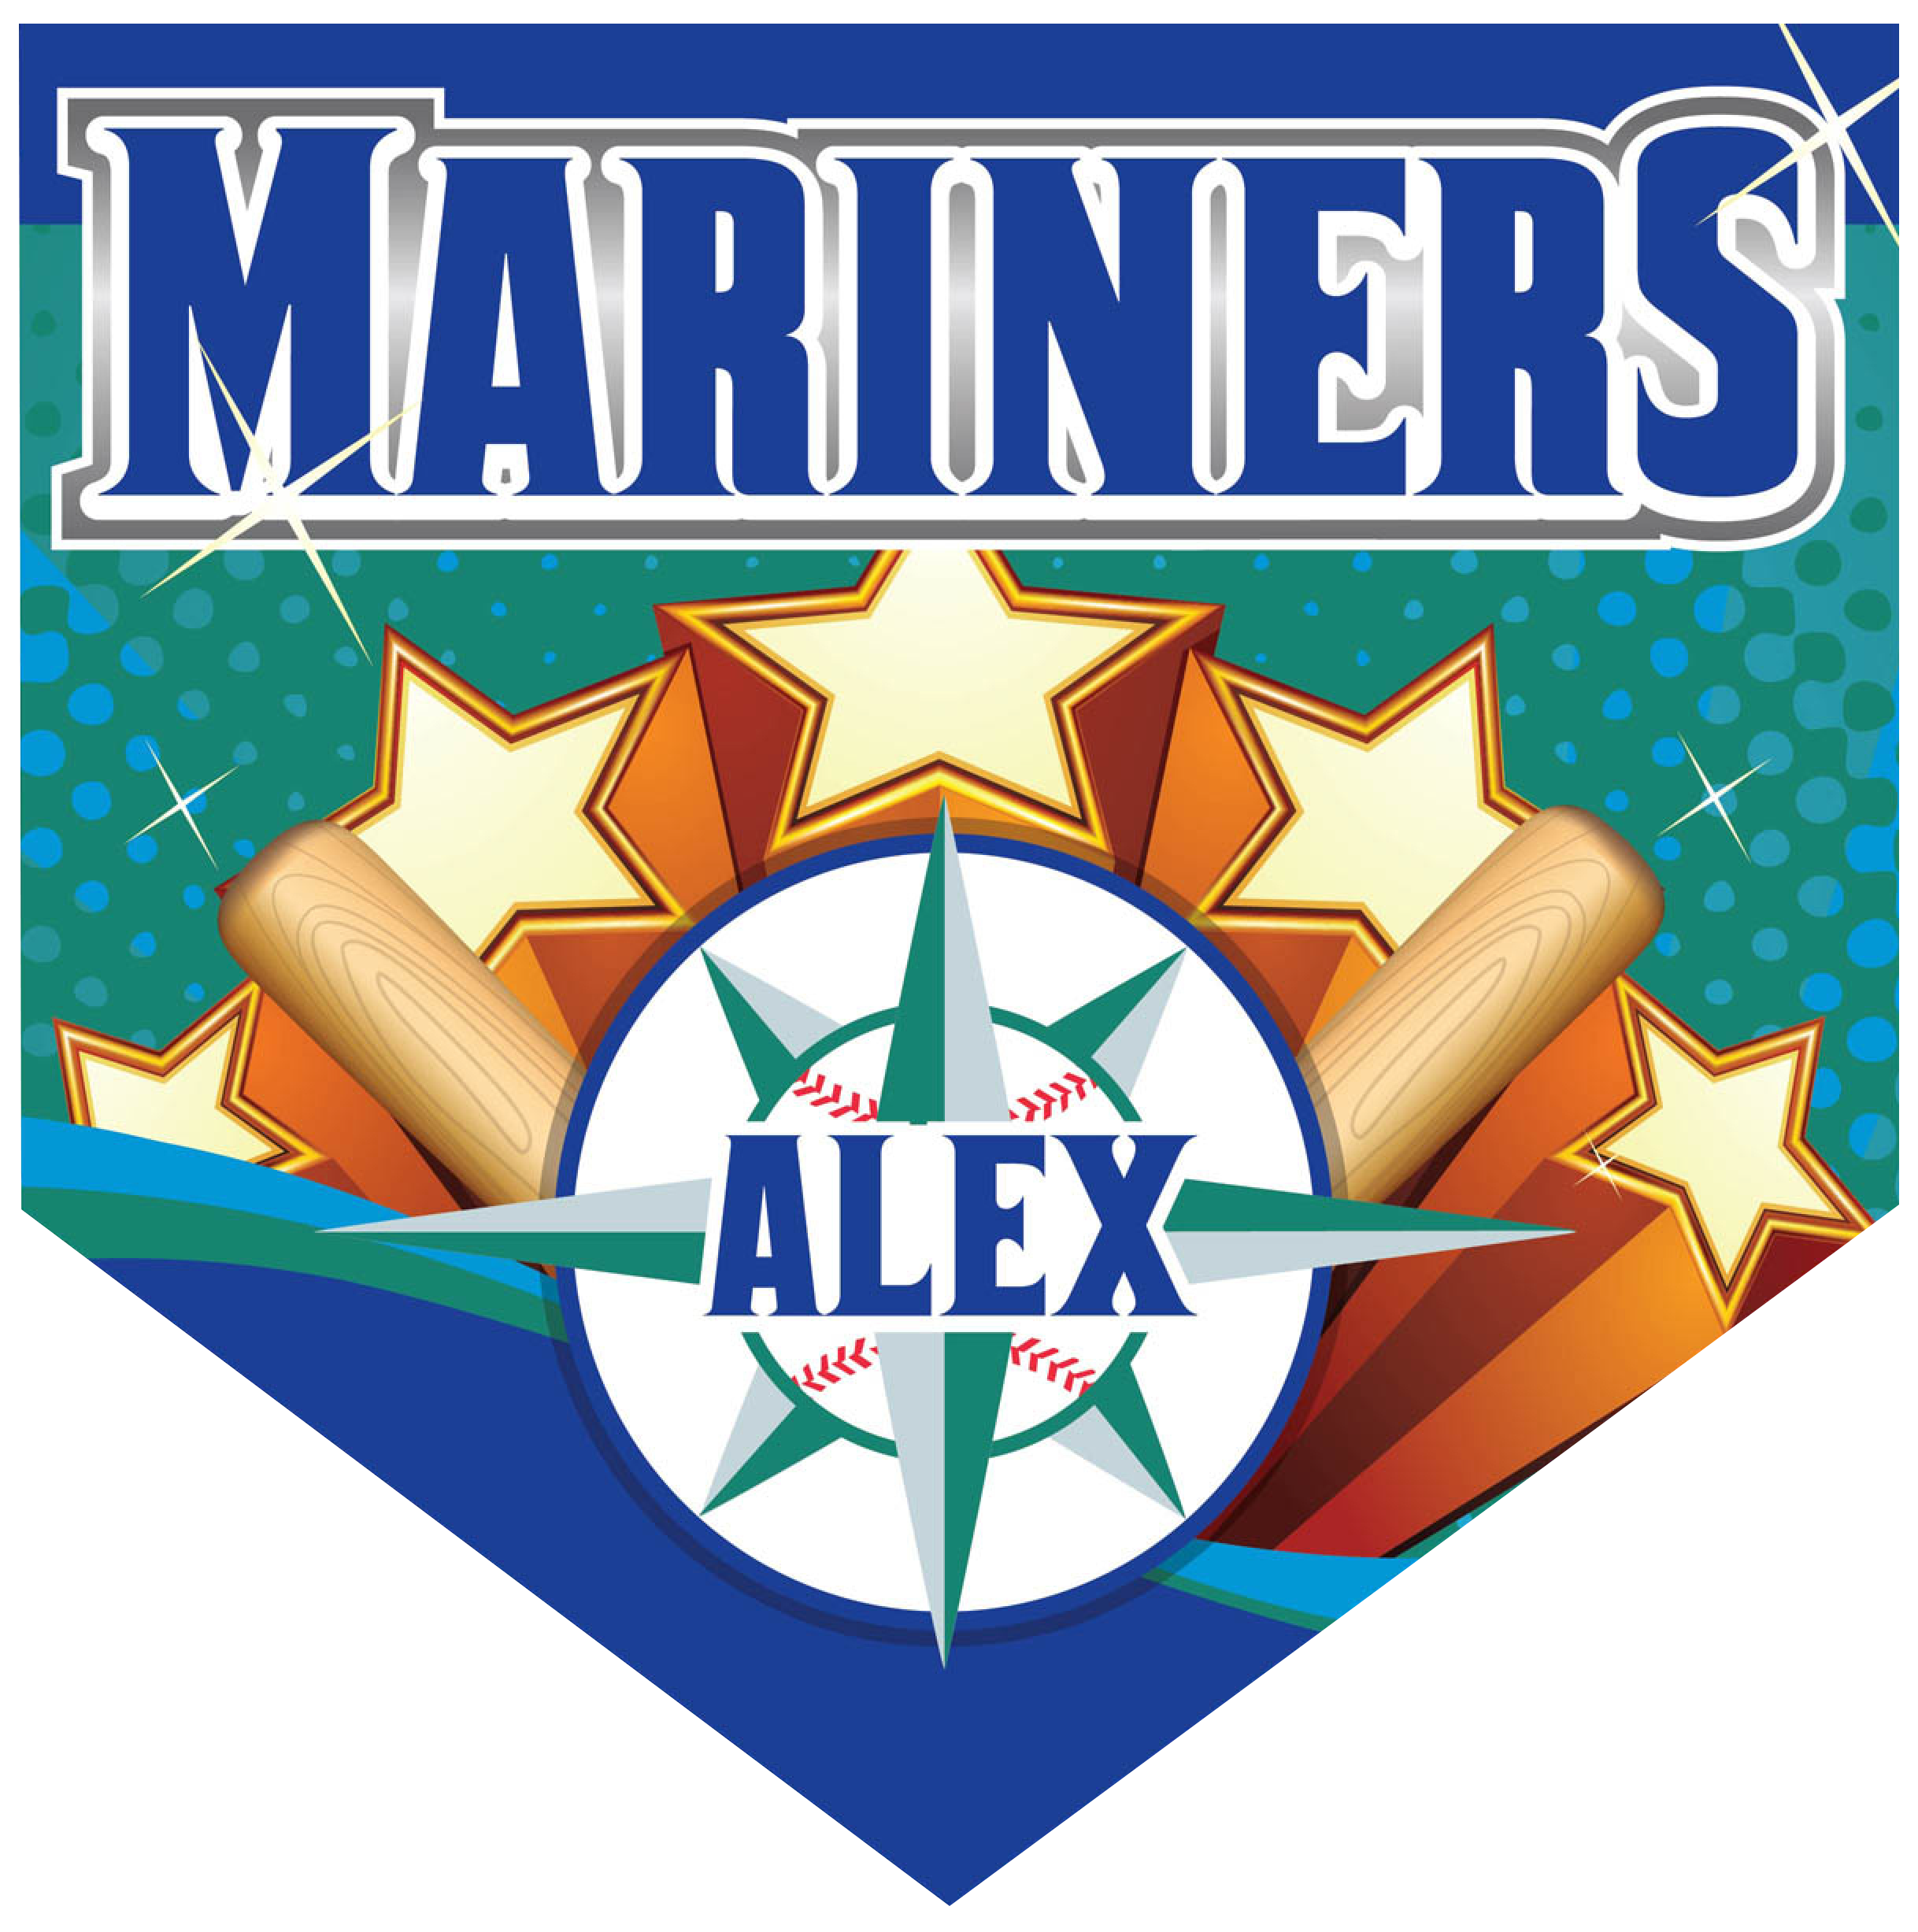 Mariners Home Plate Individual Team Pennant